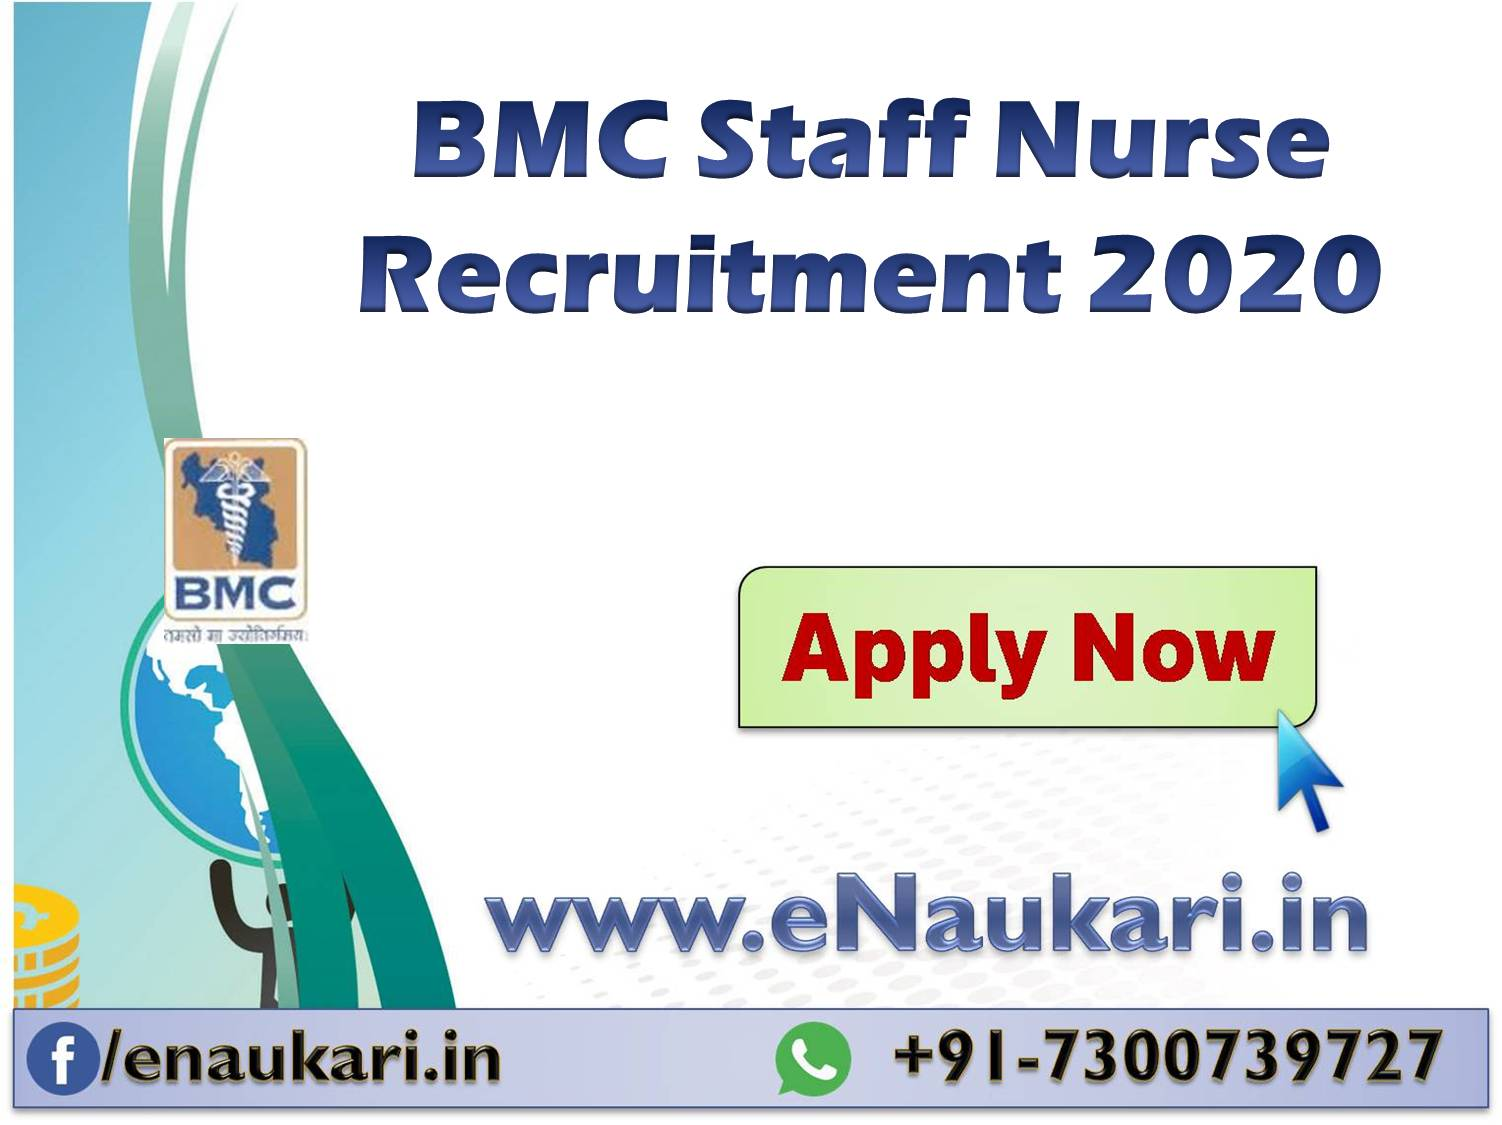 BMC-Staff-Nurse-Recruitment-2020